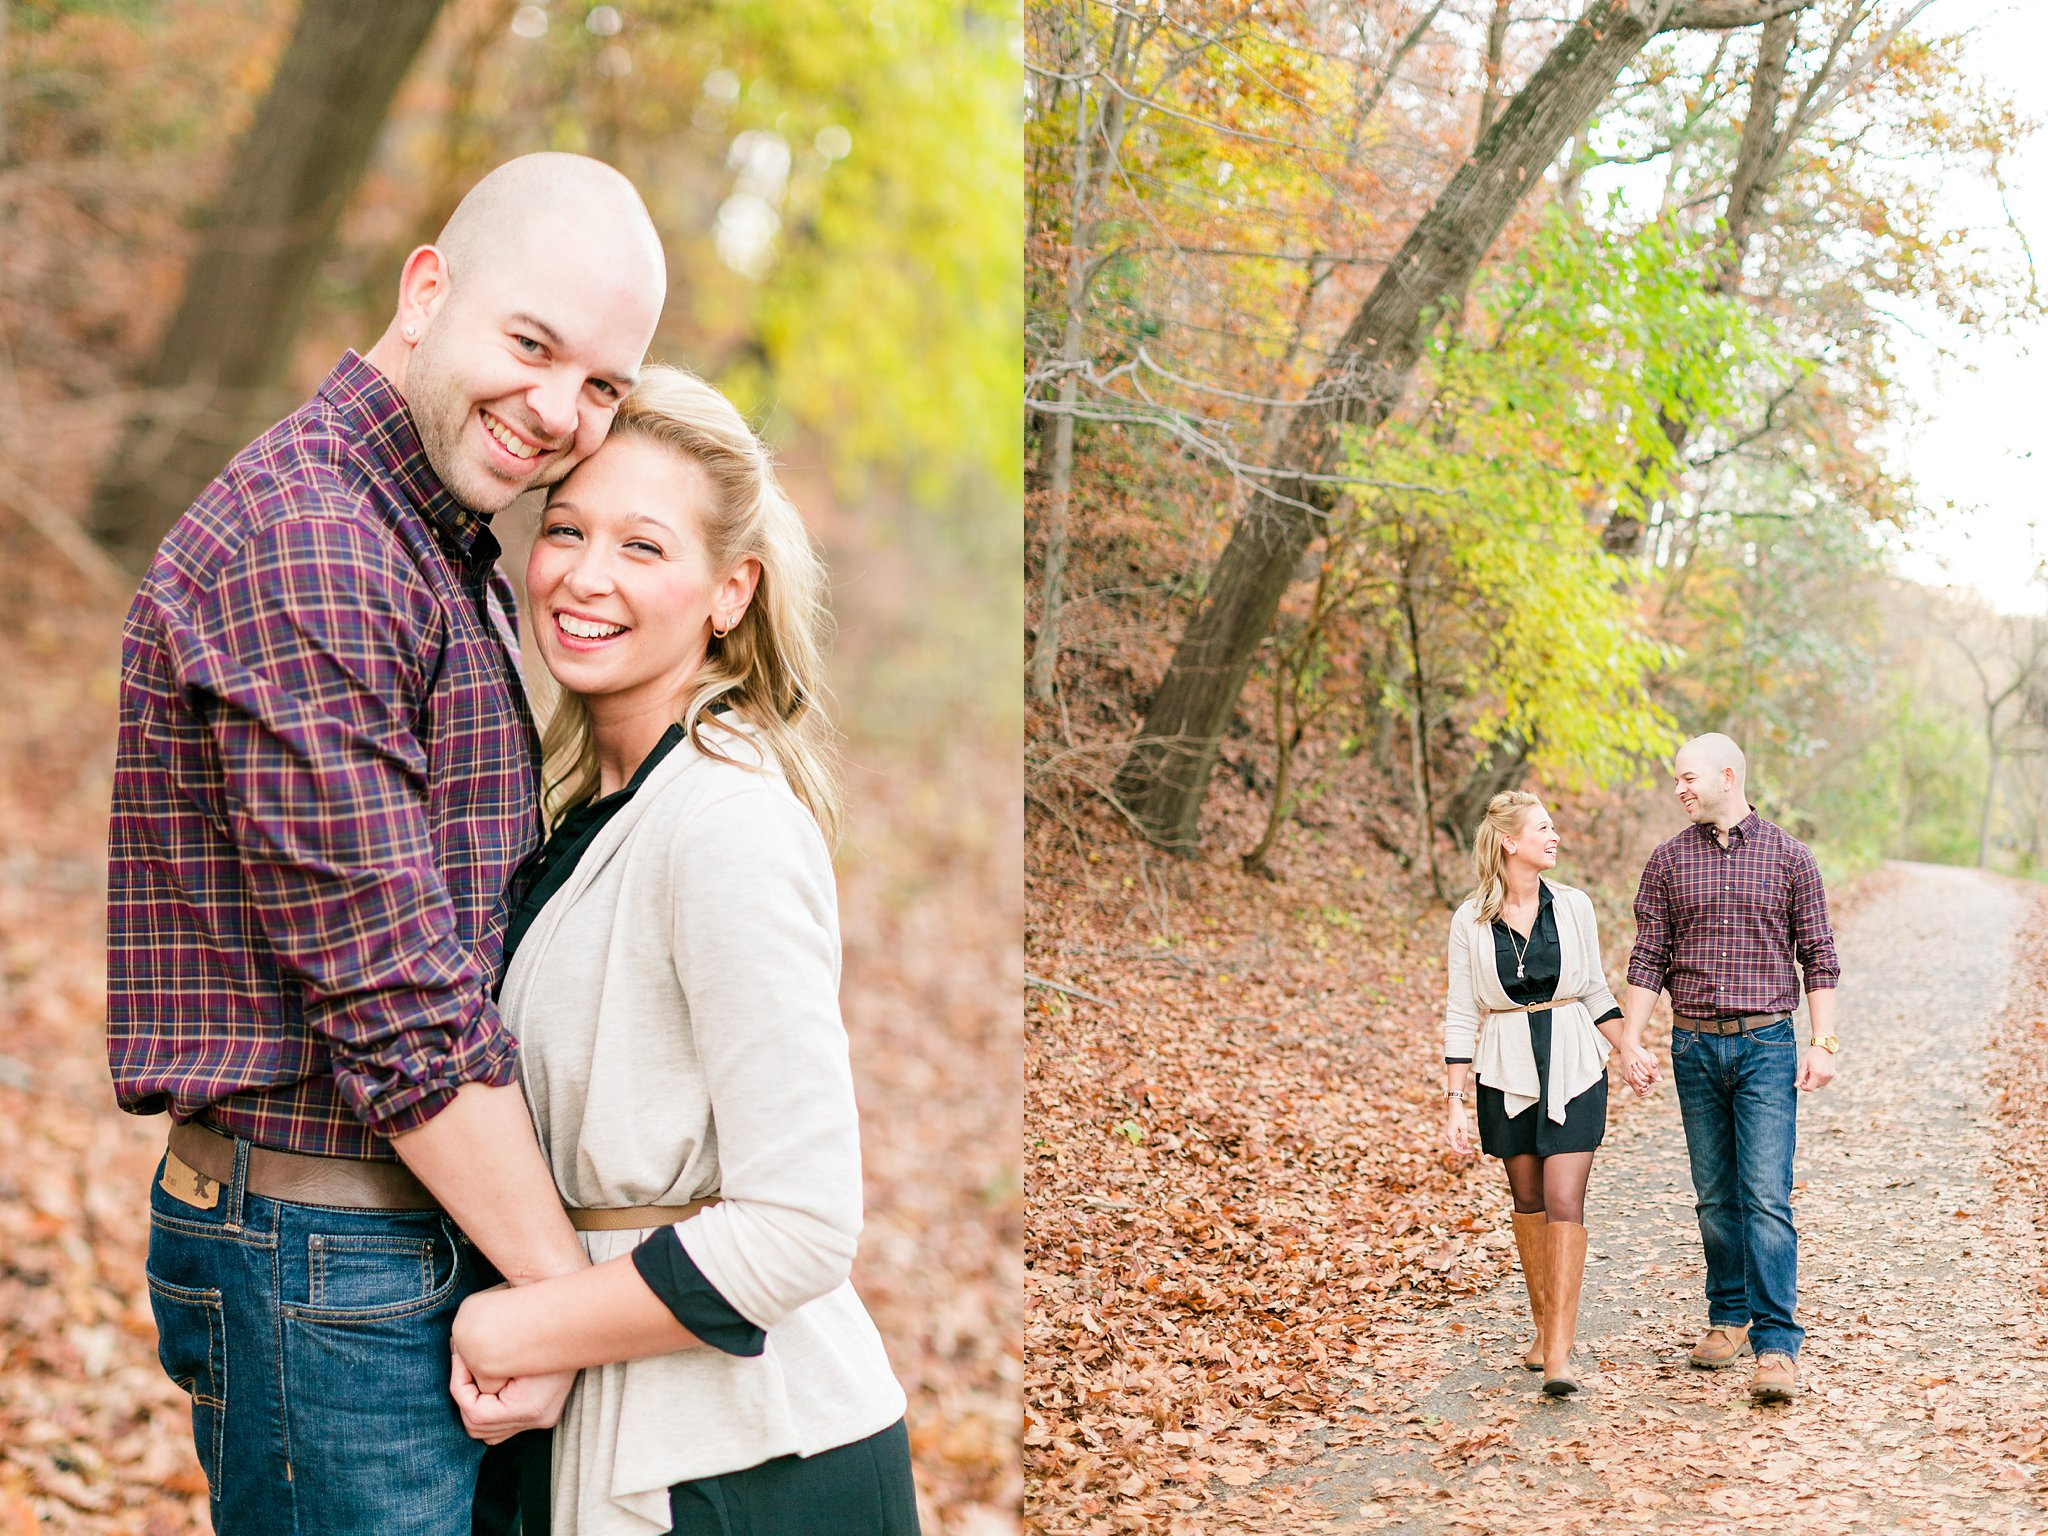 Rock Creek Park Engagement Photos DC Wedding Photographer Megan Kelsey Photography Katie & Conor-158.jpg